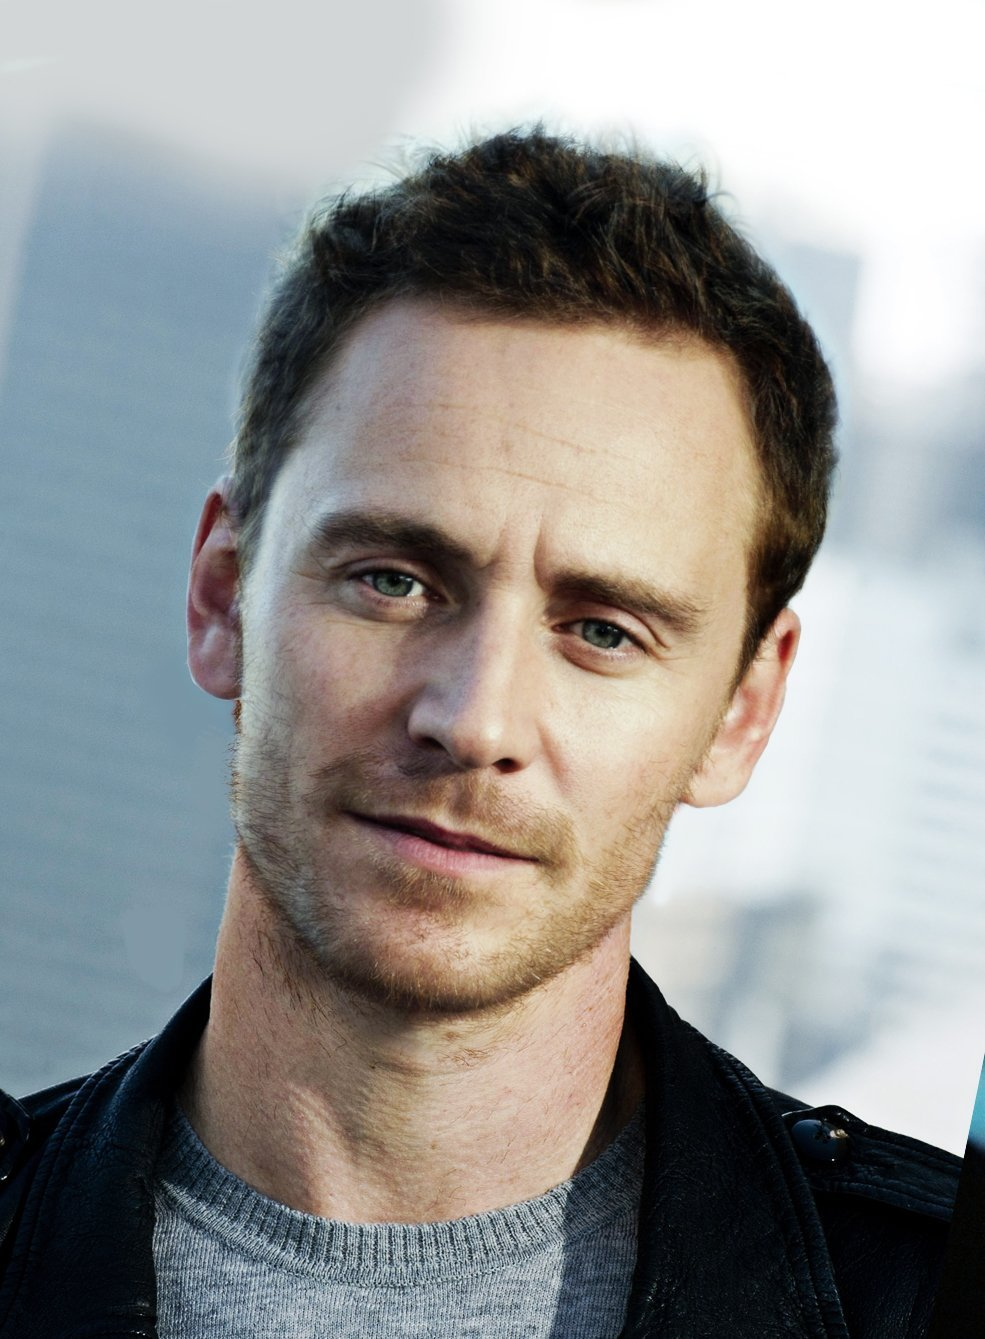 tom-hiddleston-and-michael-fassbender-are-also-friends-when-thatnordicguy-combined-their-features-he-created-a-very-attractive-man